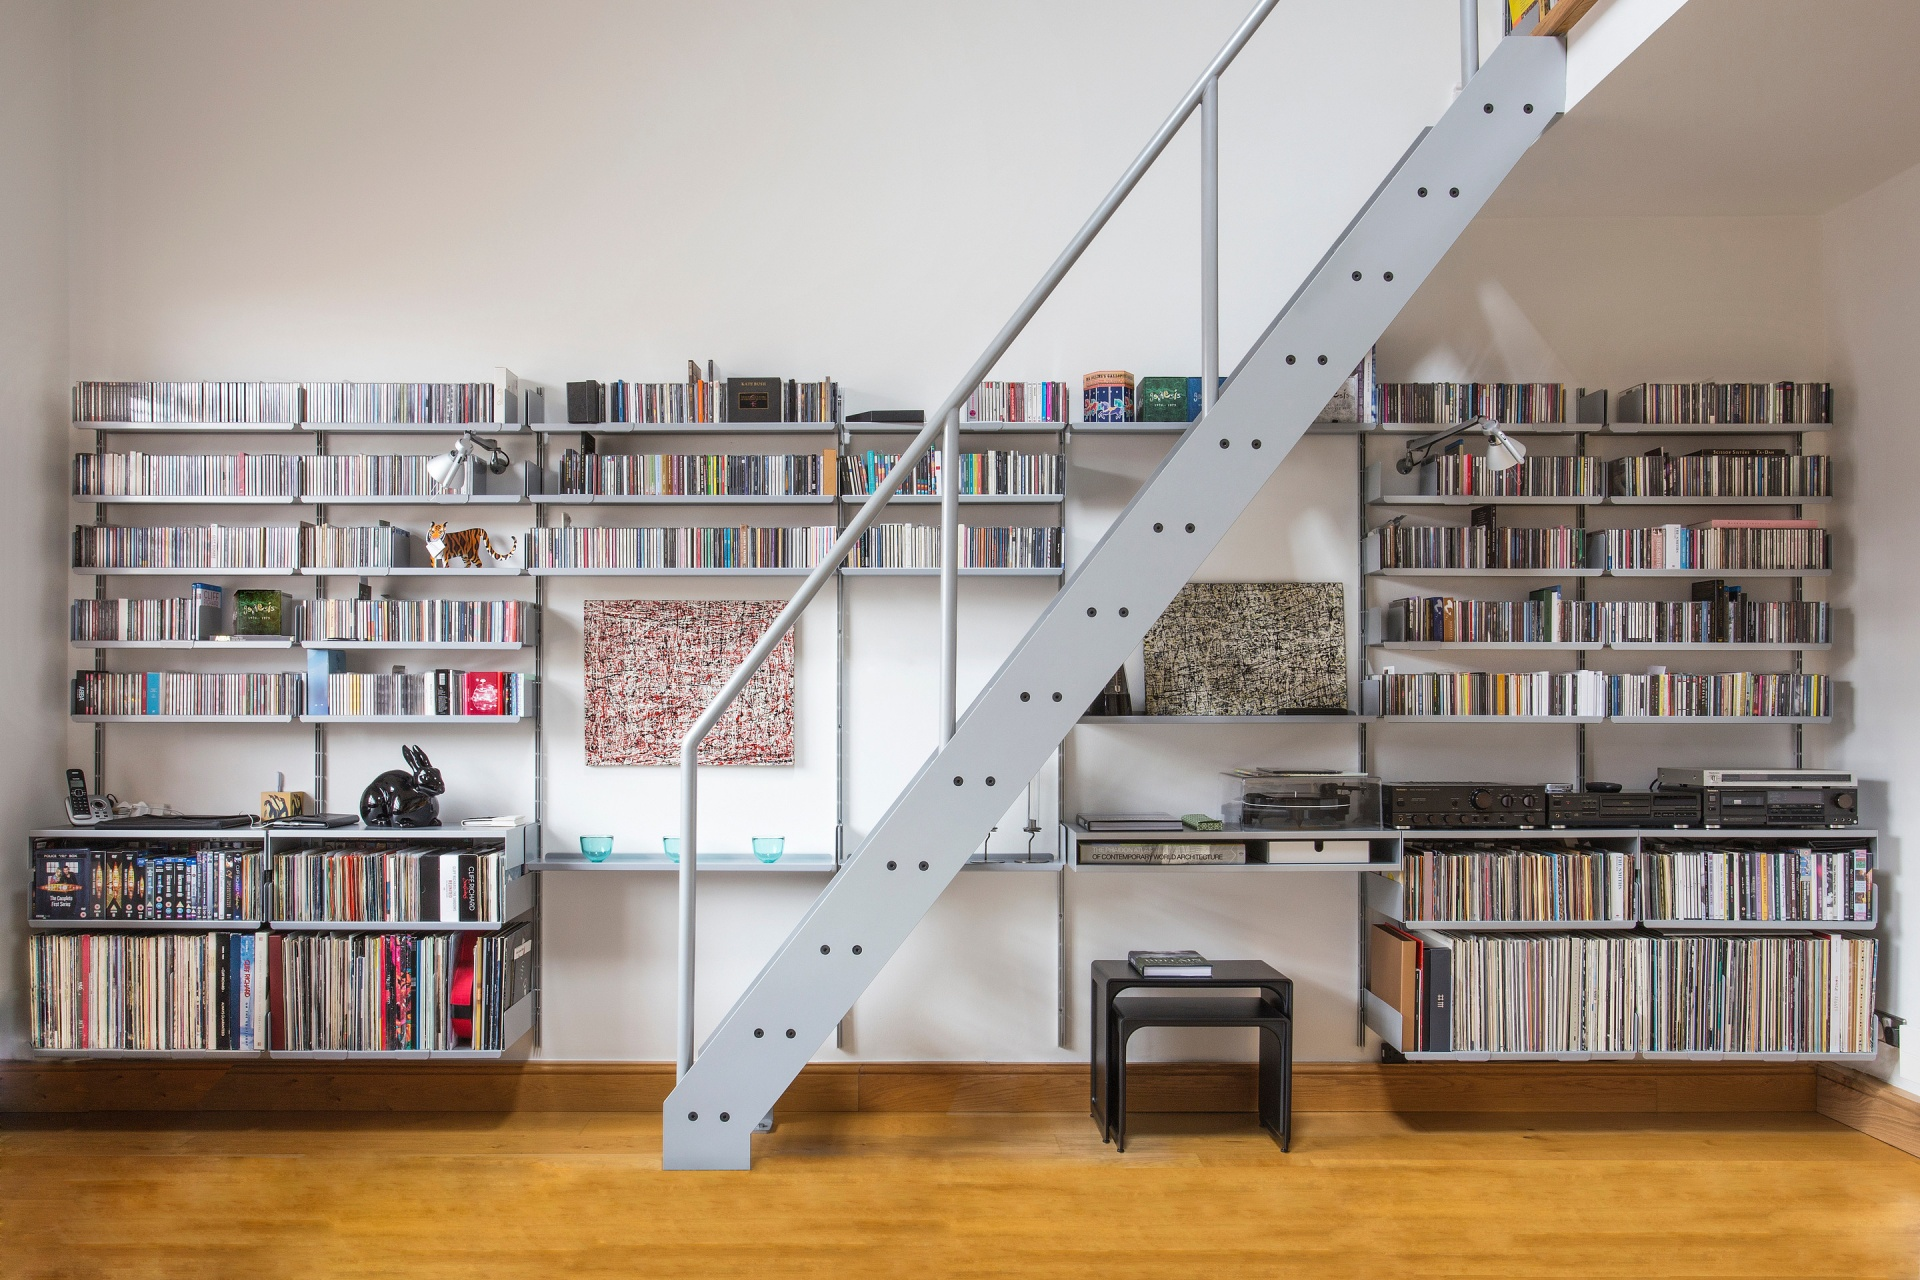 "7"" and 12"" vinyl together with CDs; flipped shelves and a double shelf accommodate the hifi separates. Our meticulous free planning service allows this to happen"